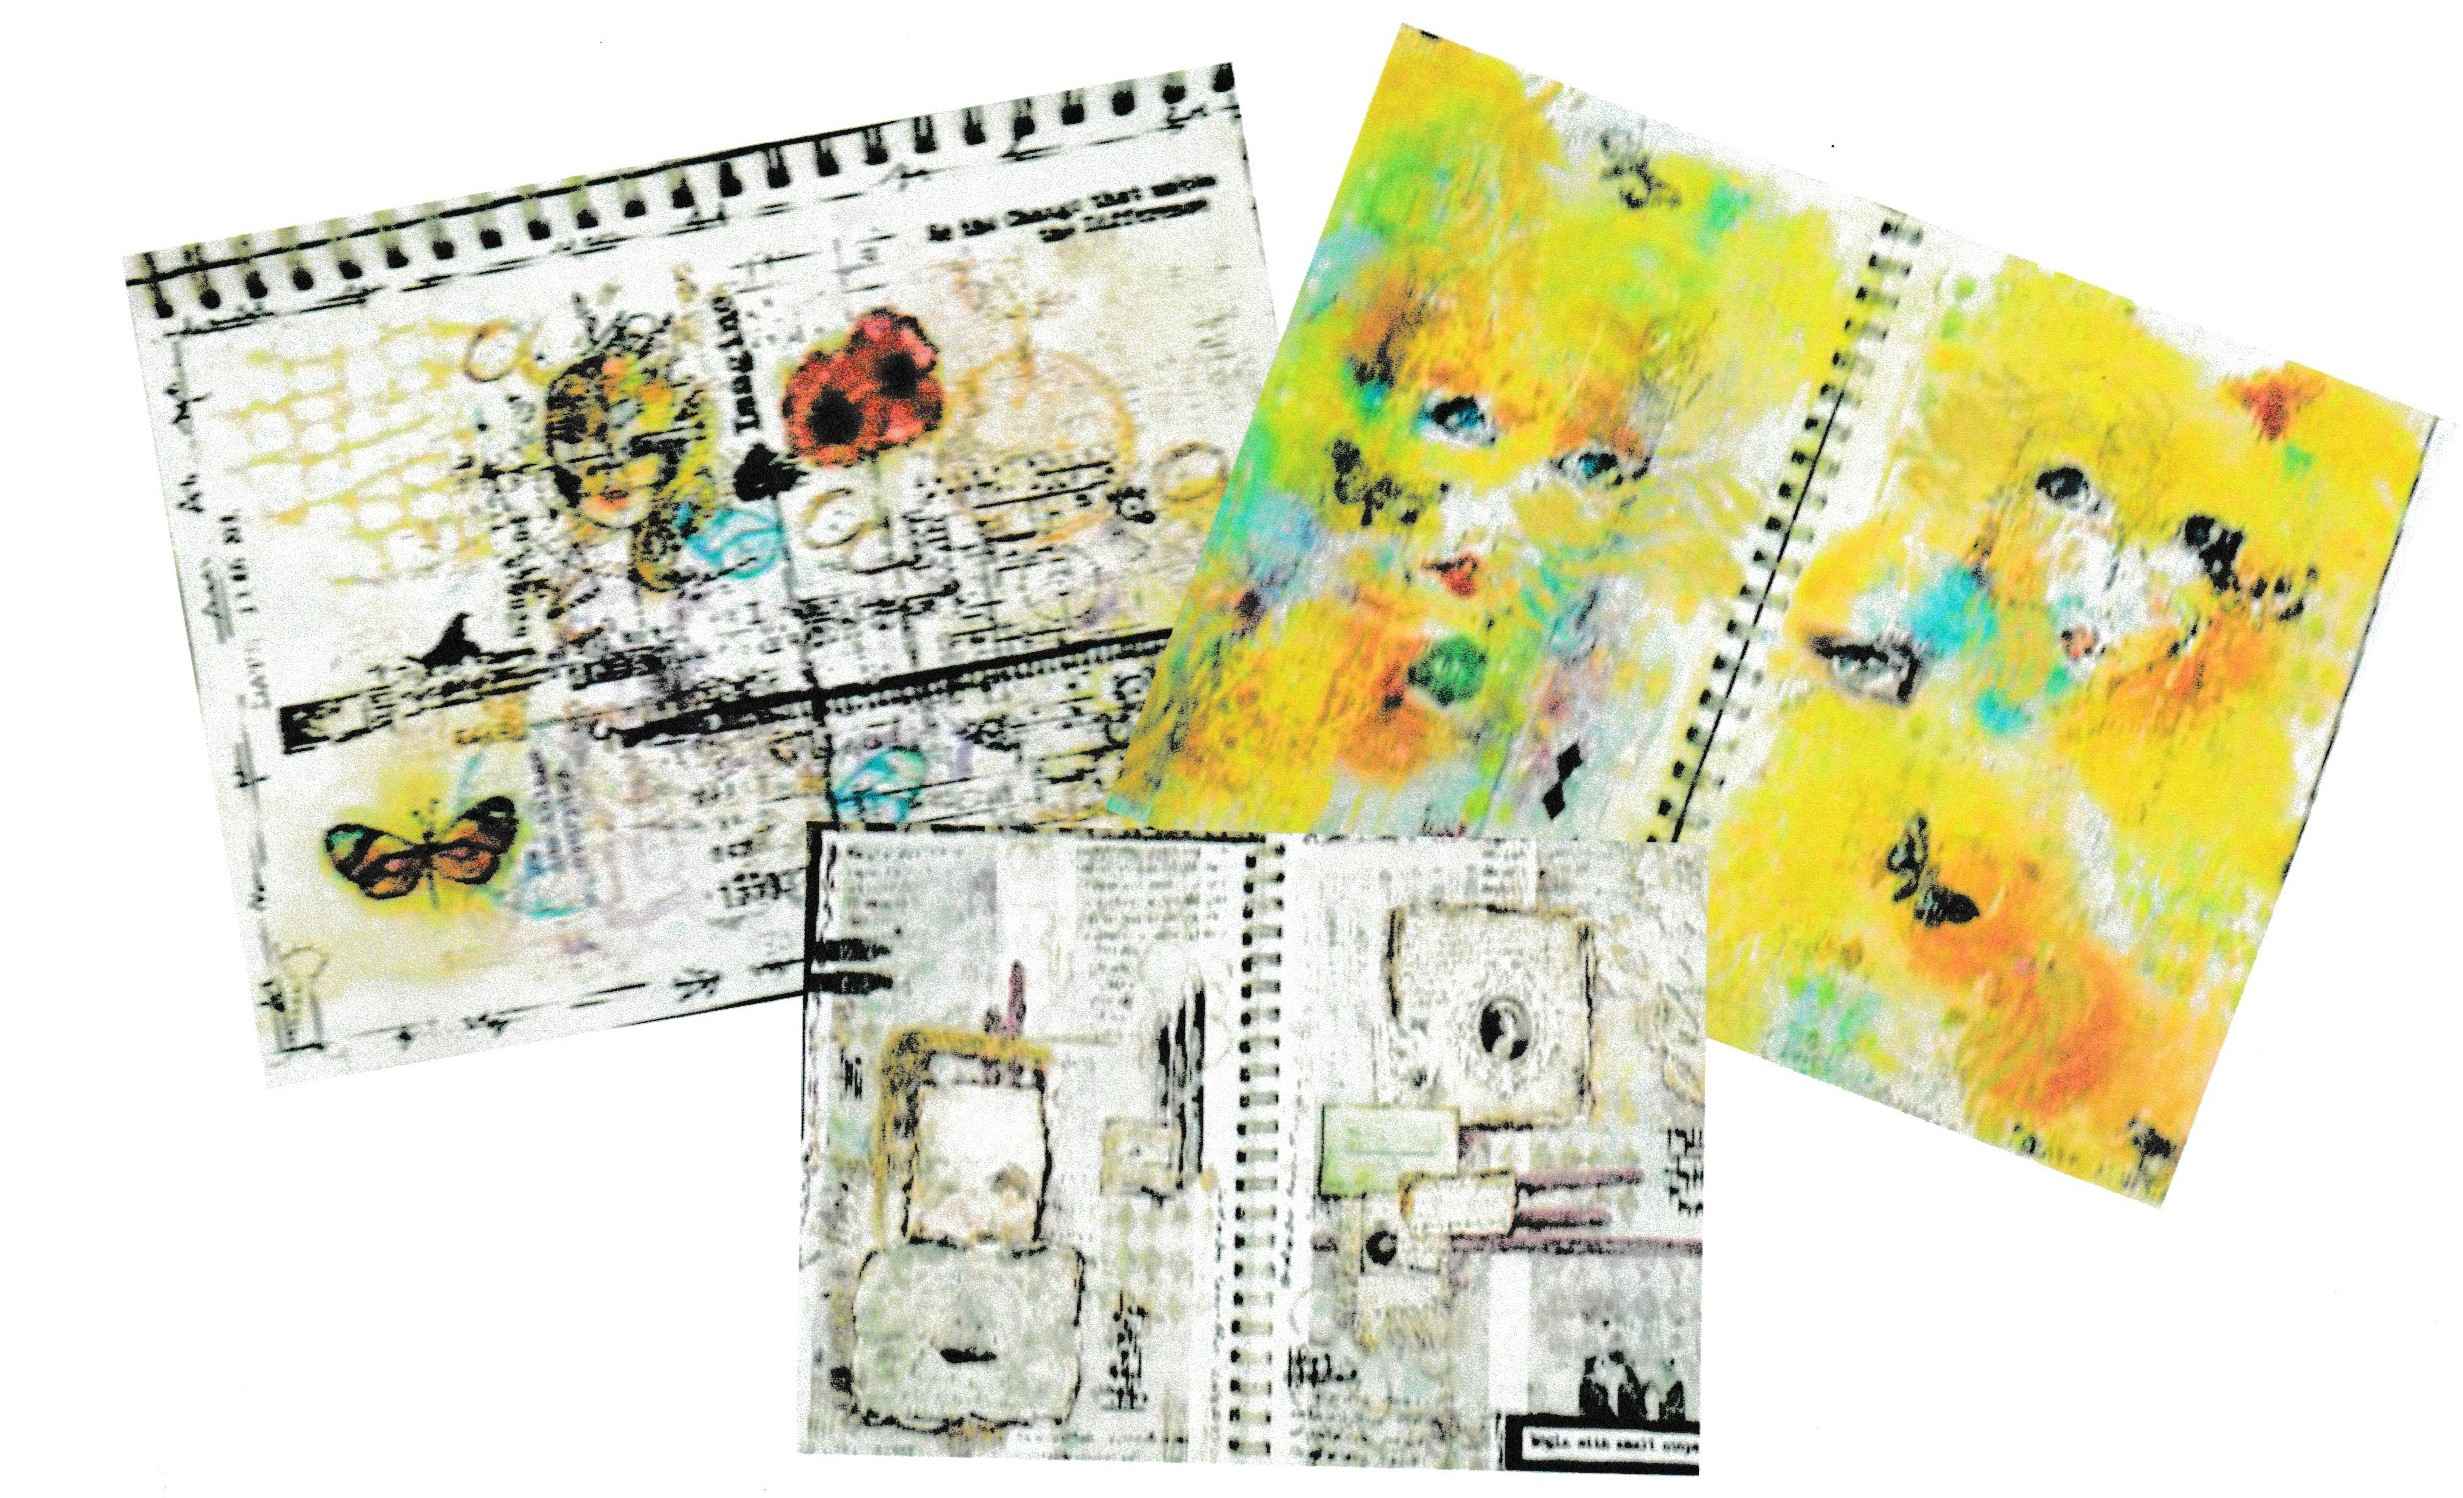 Three journals of images